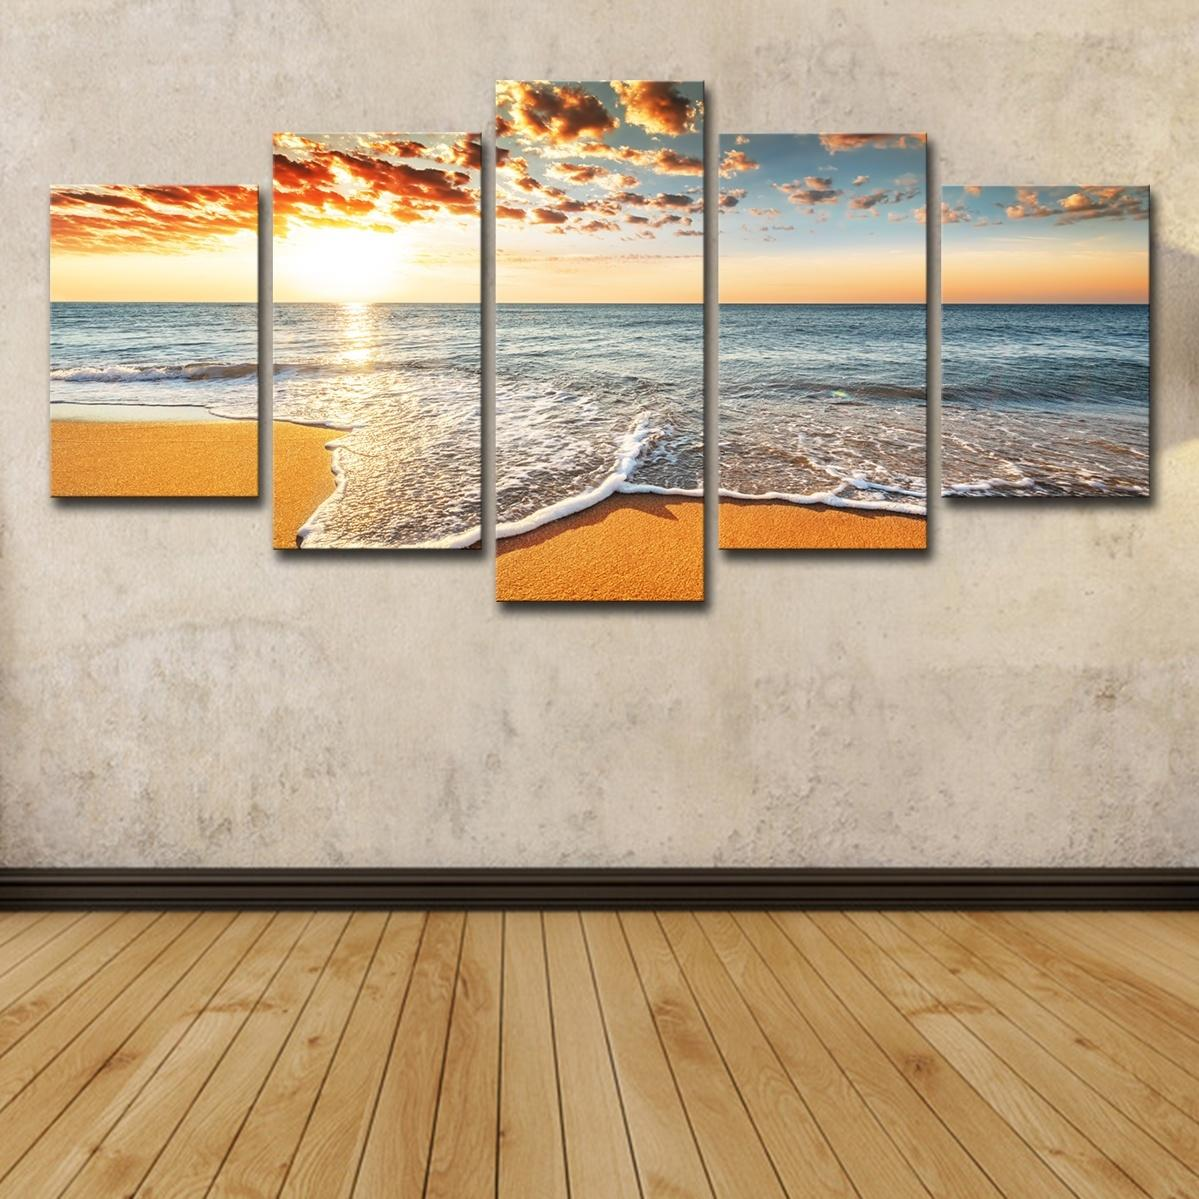 5Pcs Colorful Sunshine Beach Sea Waves Seascape Oil Painting Poster Wall Art HD Print Canvas Painting Fashion Hanging Pictures